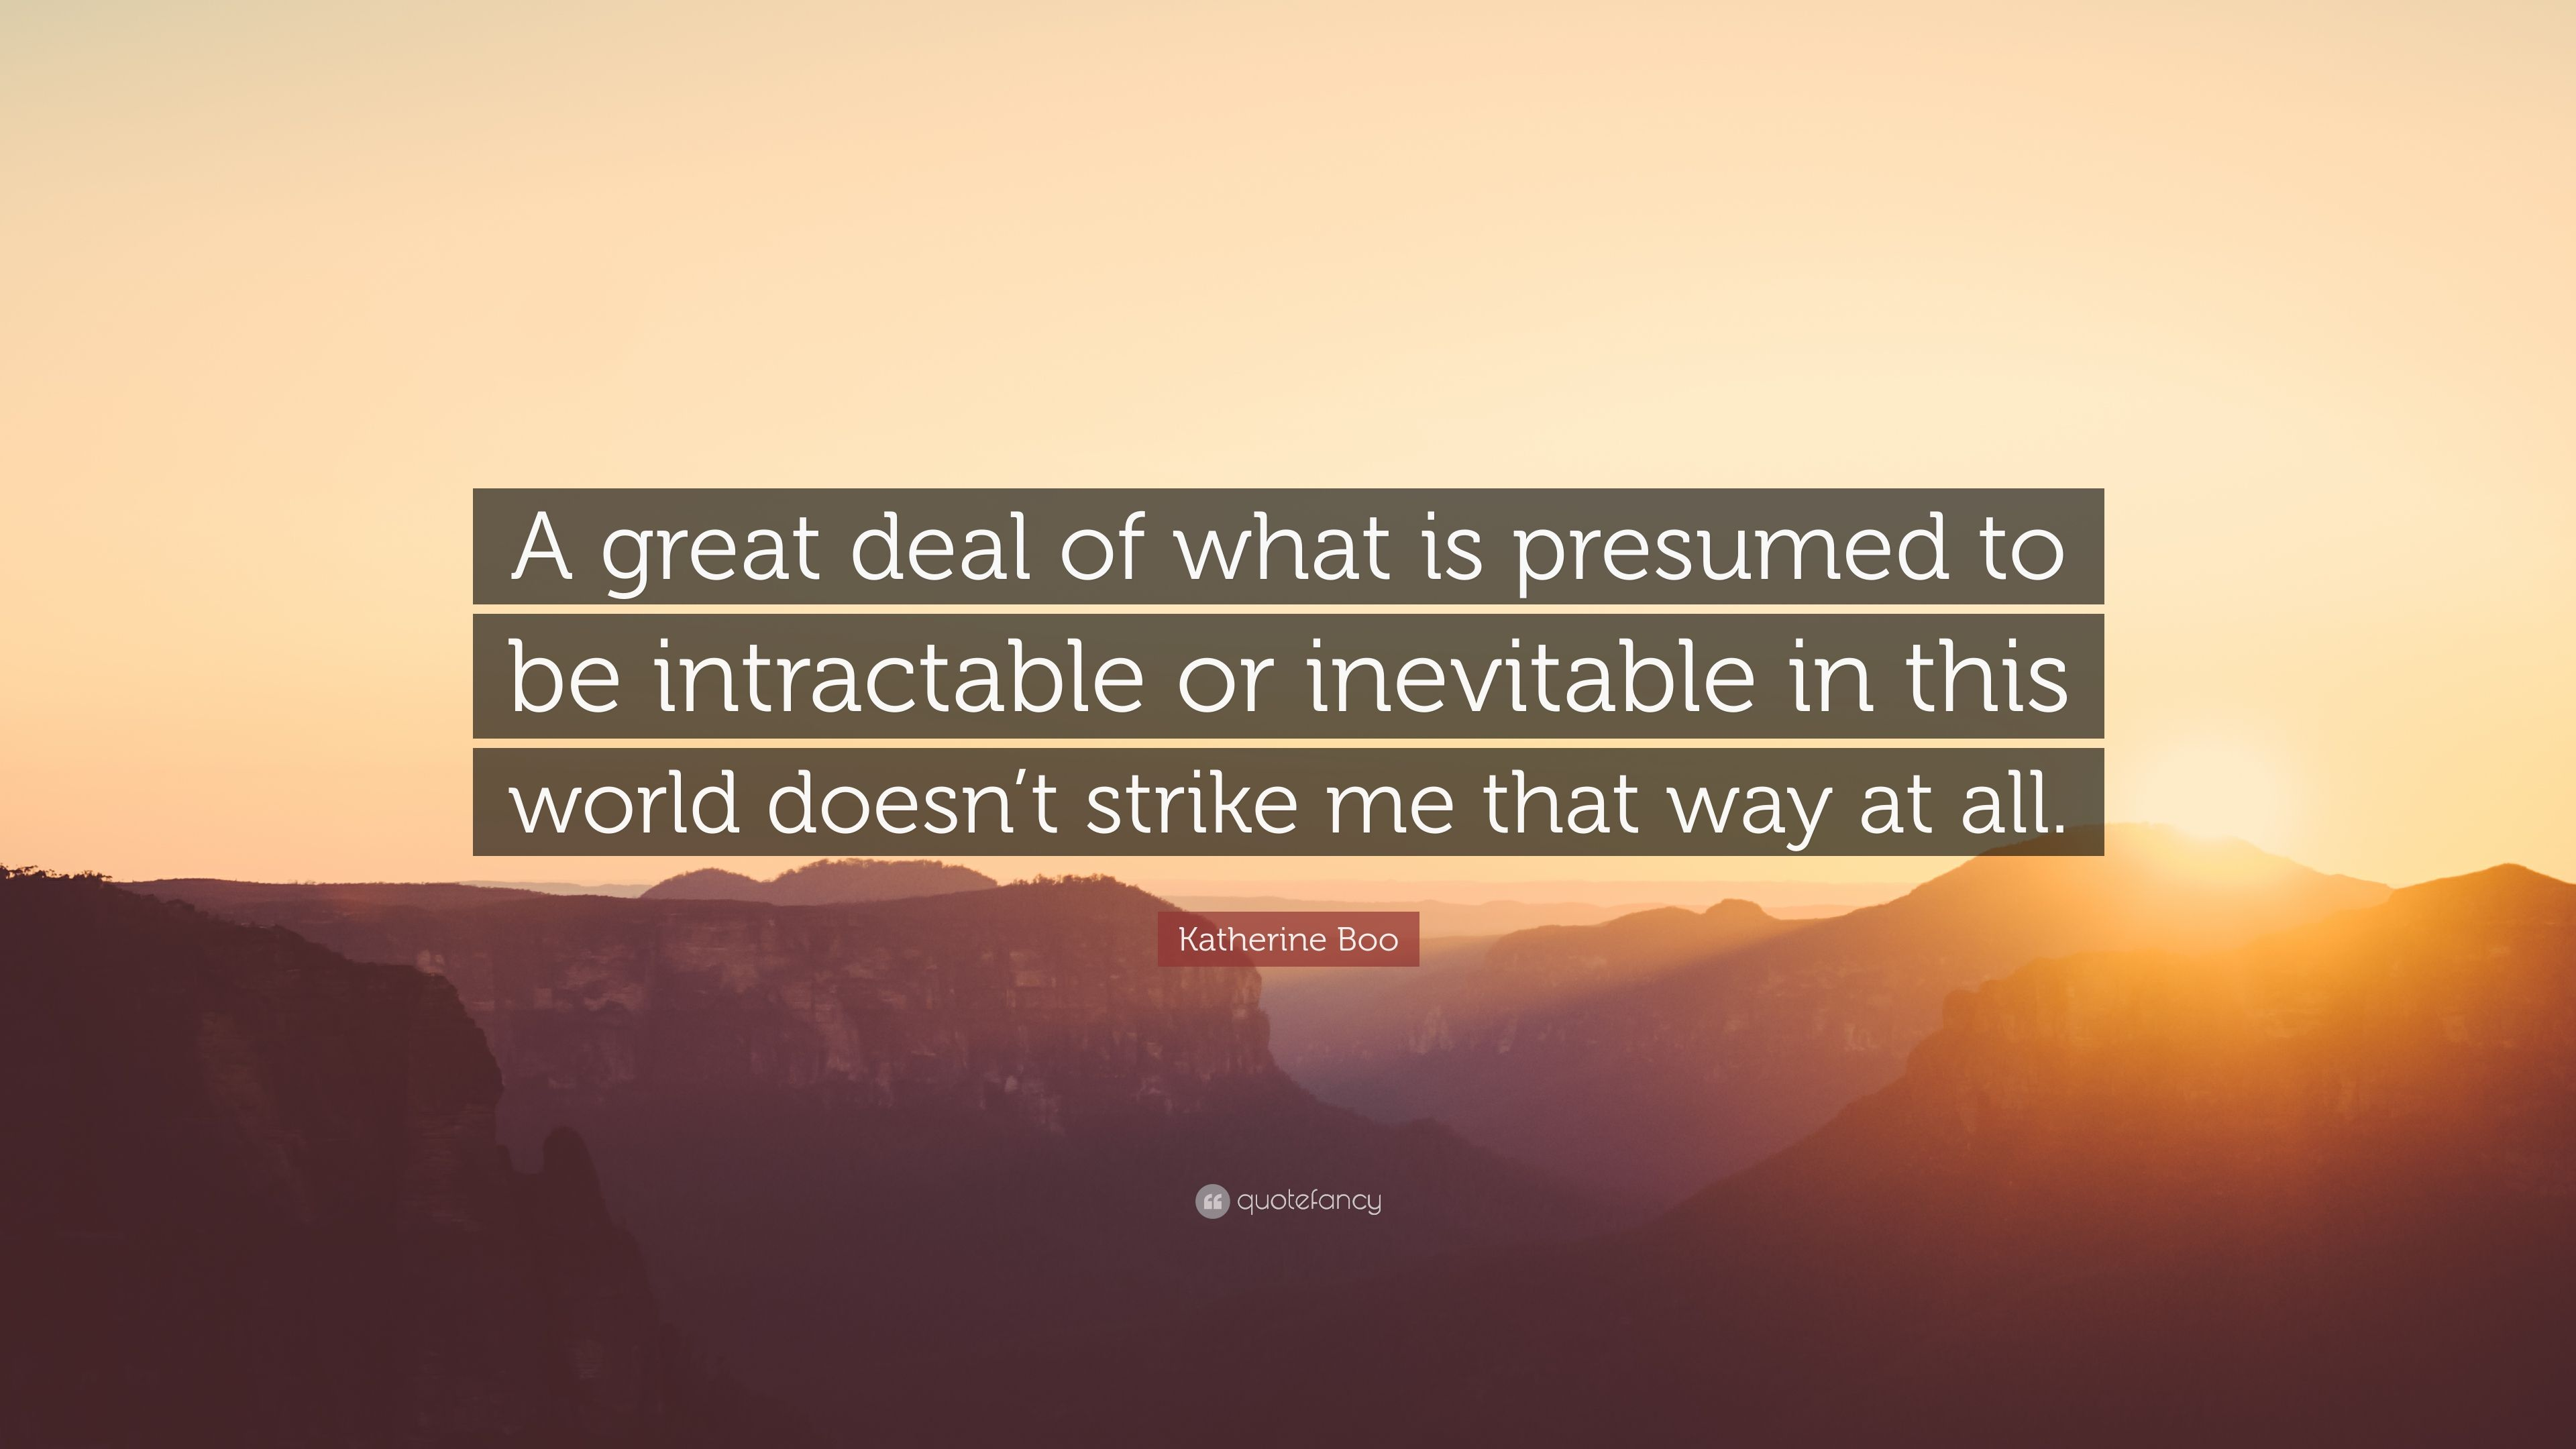 Superior Katherine Boo Quote: U201cA Great Deal Of What Is Presumed To Be Intractable Or With What Is Presumed